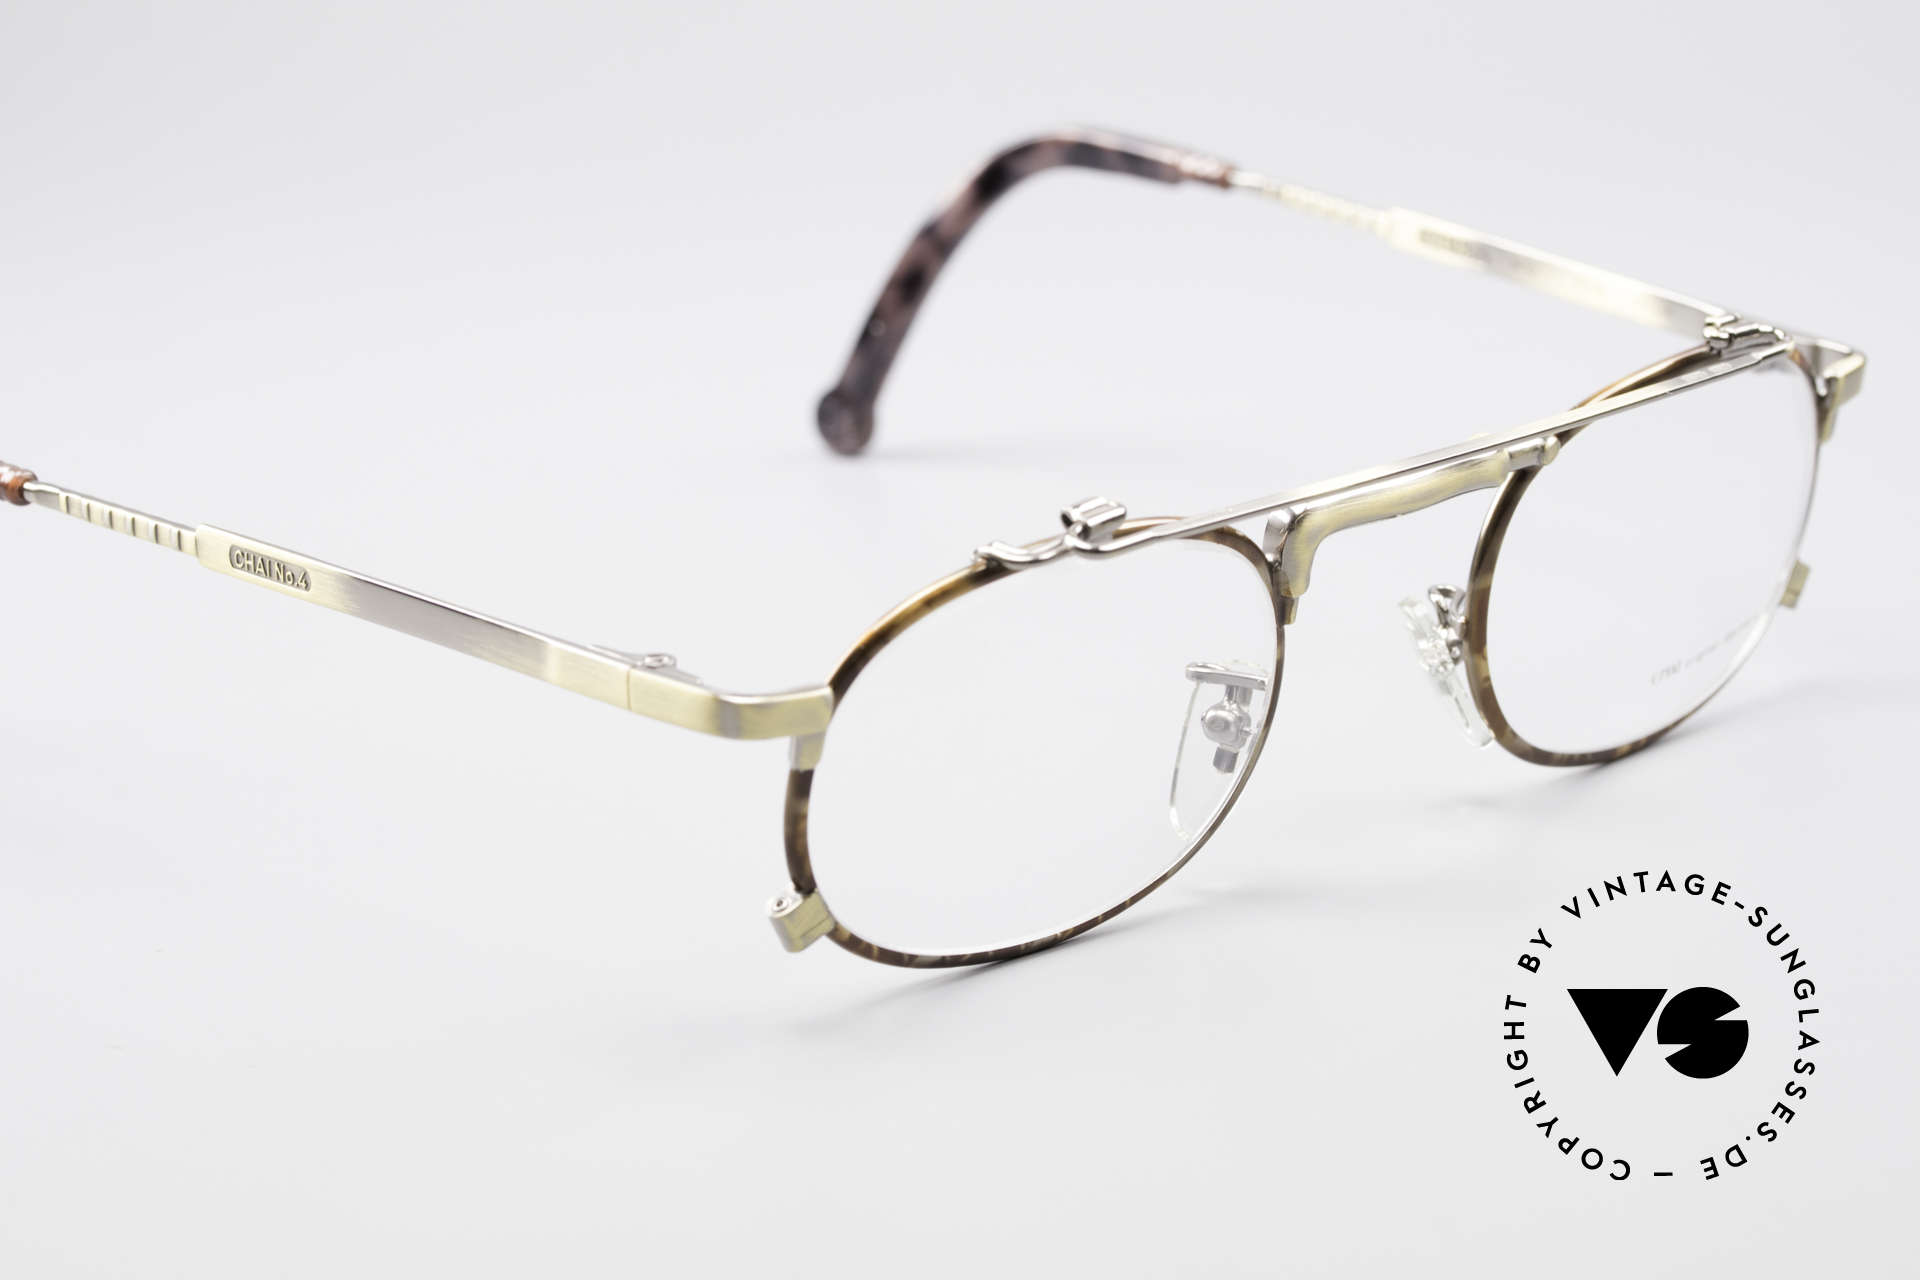 Chai No4 Oval Industrial Vintage Eyeglasses, high-end quality (built to last) & industrial style!, Made for Men and Women